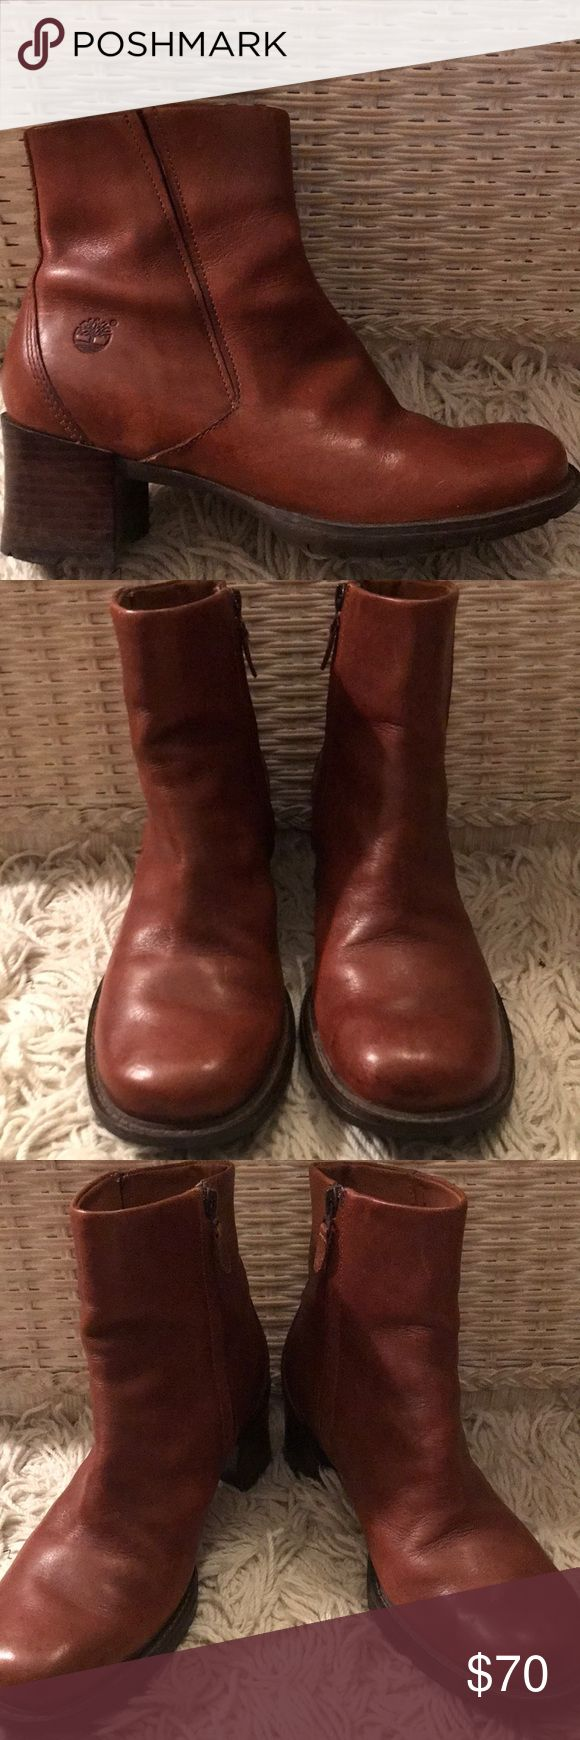 VINTAGE TIMBERLAND LEATHER BOOTS!! Very sharp looking vintage chestnut brown leather Timberland ankle boots featuring a wooden heel, inside zipper, cushioned sole and in great condition with very little wear on the bottom. Timberland Shoes Ankle Boots & Booties